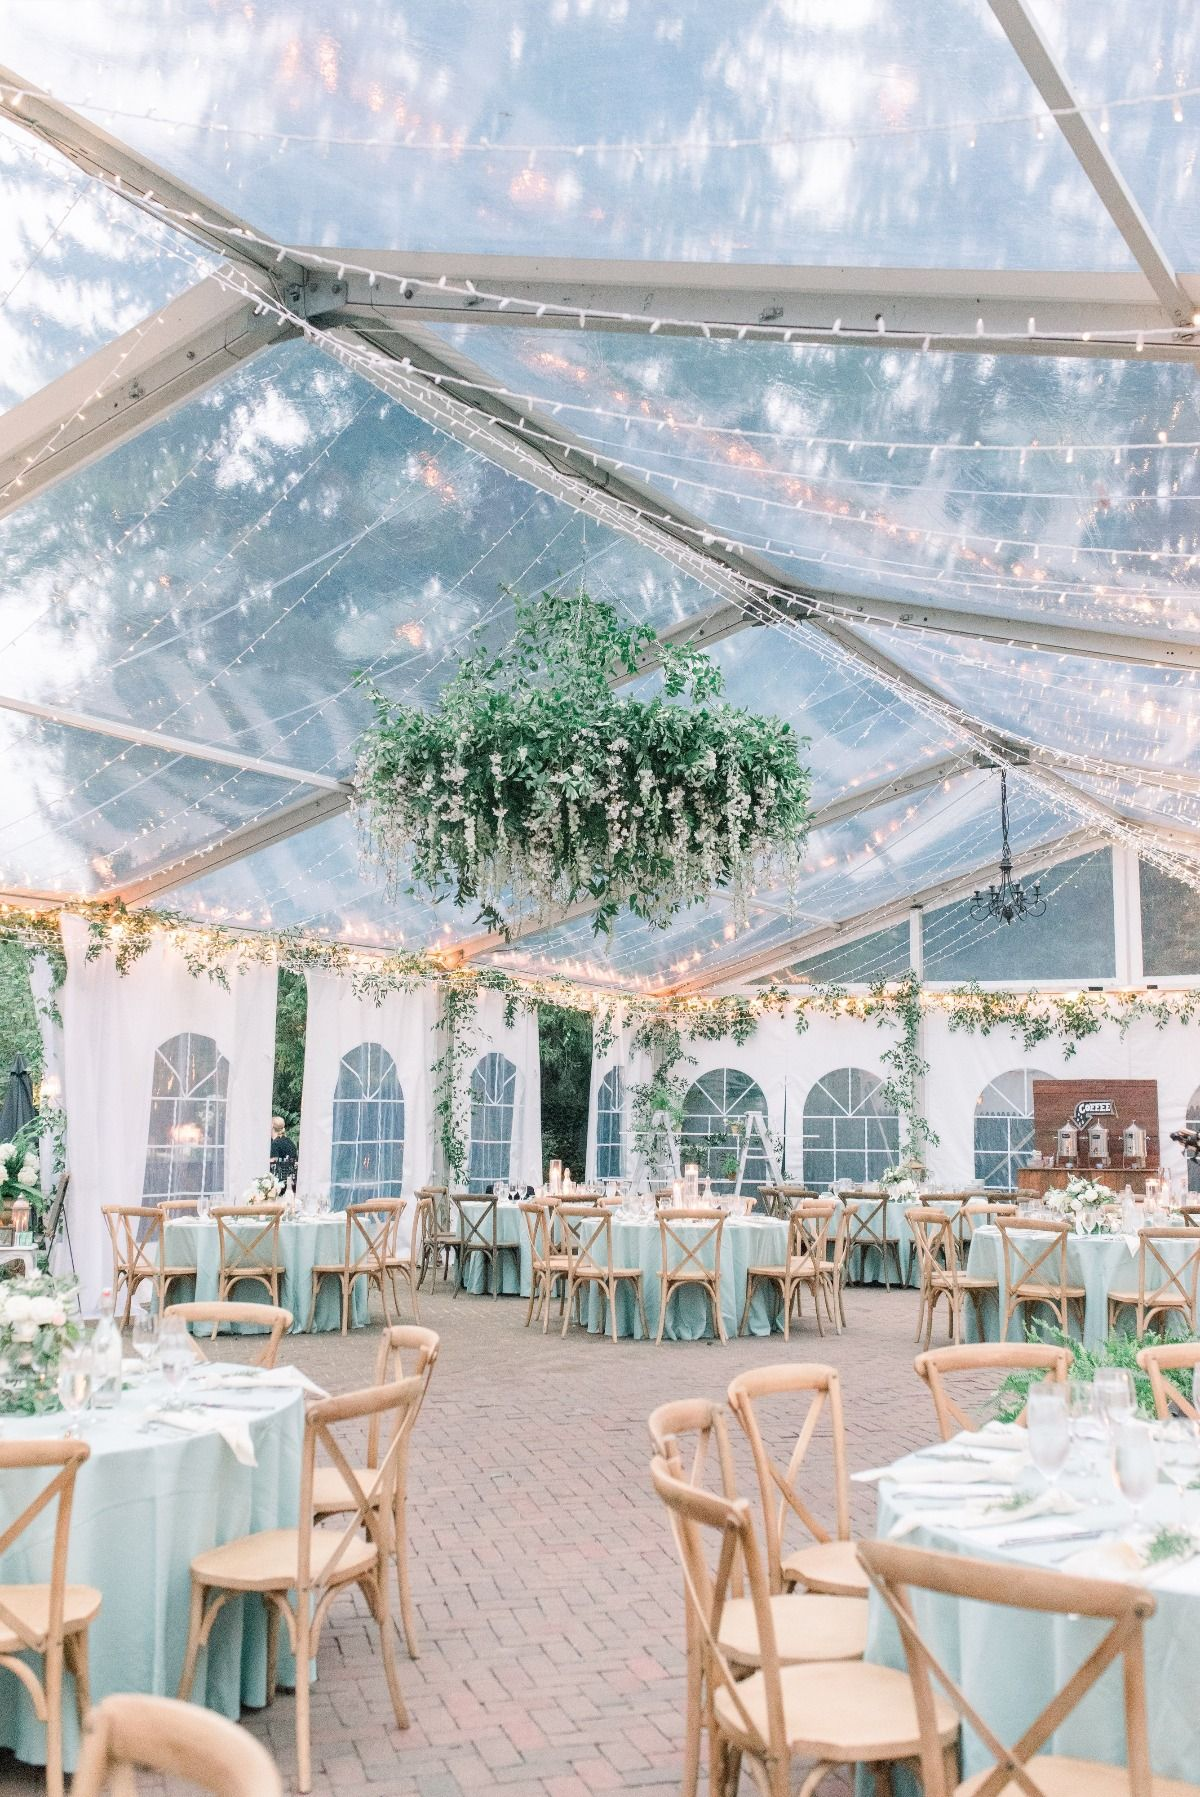 How To Have The Romantic Pastel Wedding Of Your Dreams Pastel Wedding Tent Wedding Outdoor Wedding